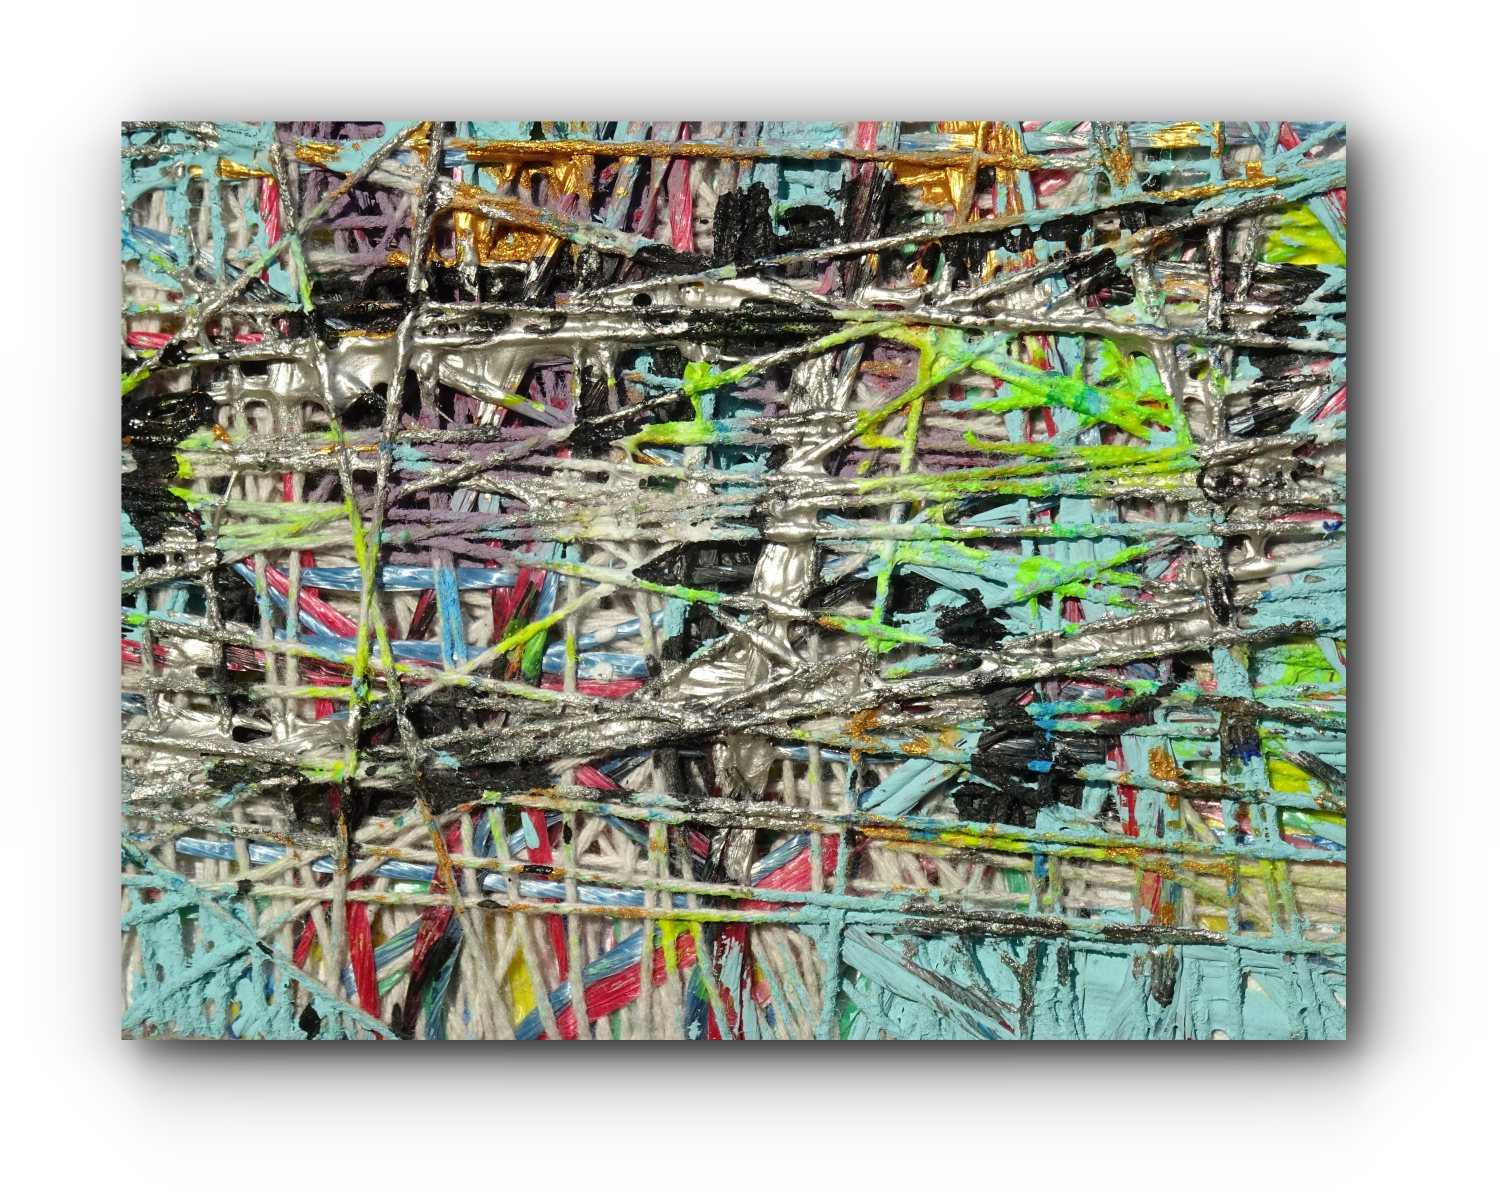 painting-detail-1-string-theory-artists-ingress-vortices.jpg